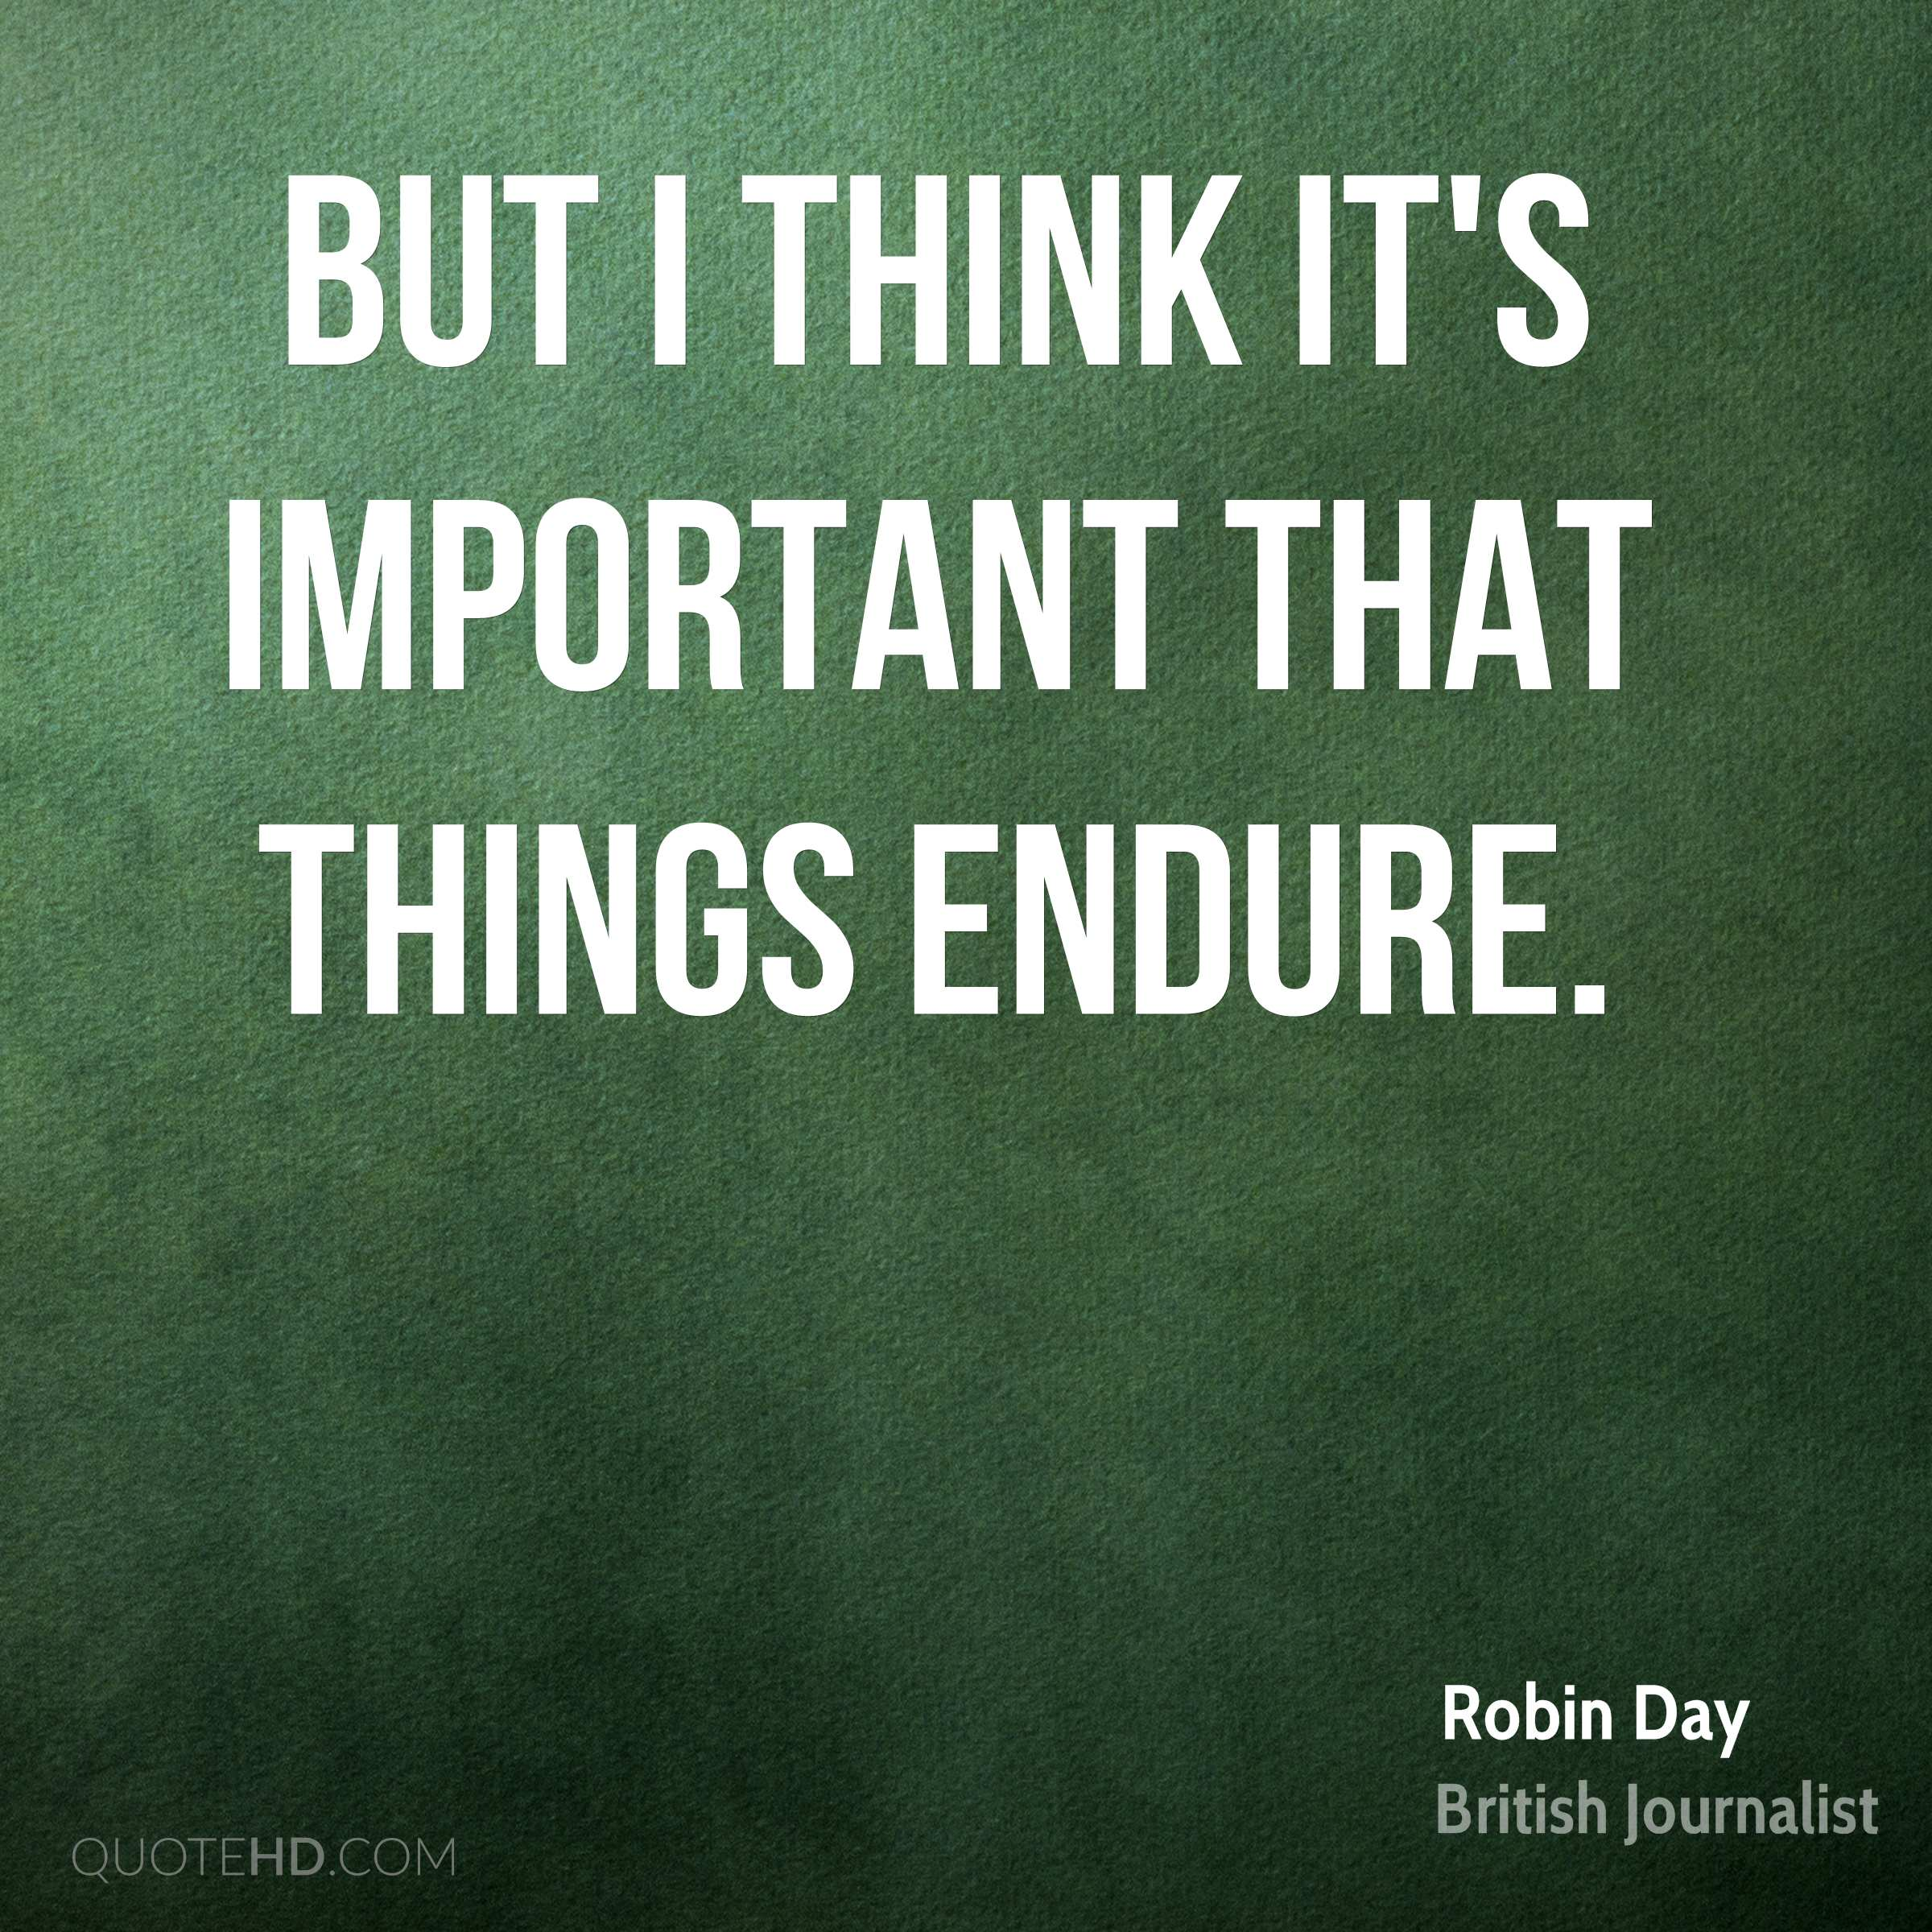 But I think it's important that things endure.